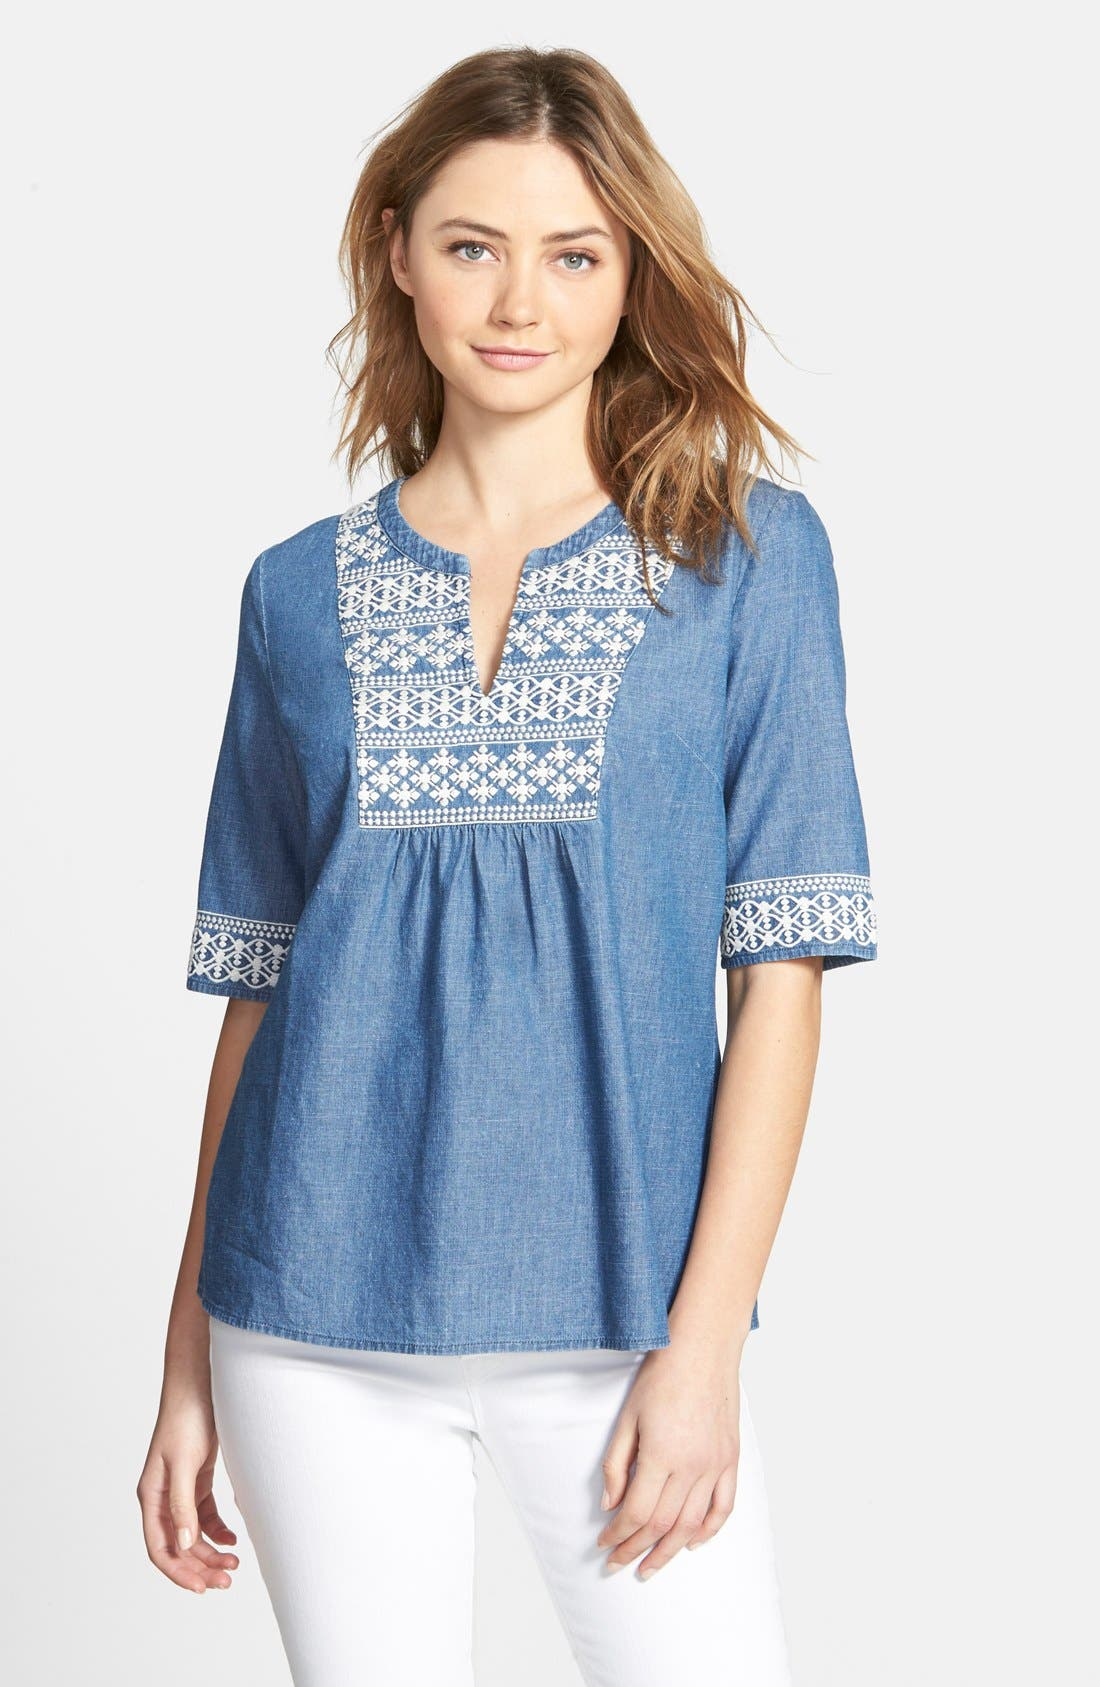 Main Image - Vineyard Vines Embroidered Chambray Top